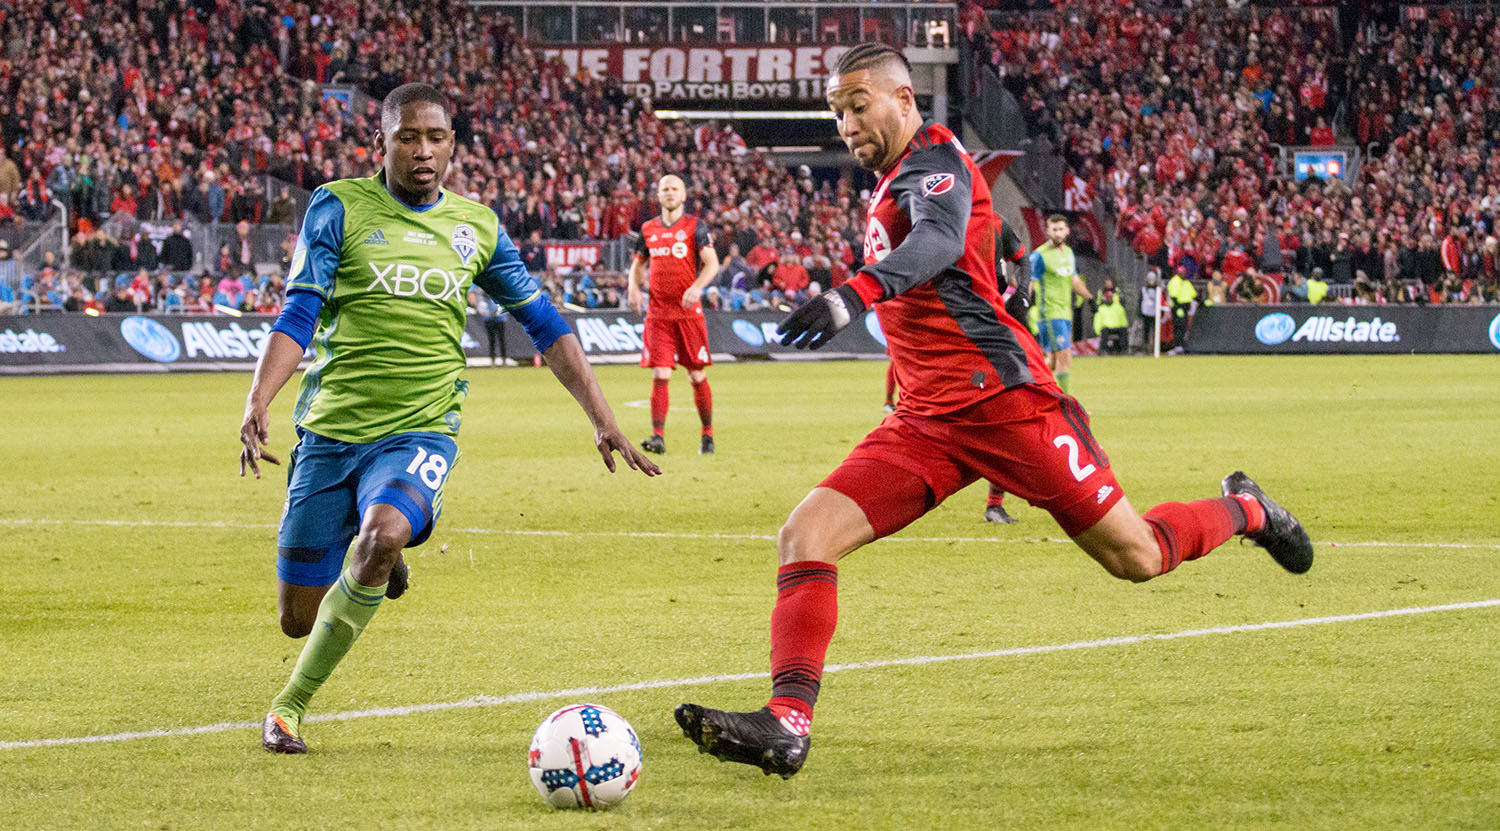 TFC's Justin Morrow breaks into the 18 yard box during the 2017 MLS Cup Playoffs.Image by Dennis Marciniak of denMAR Media.